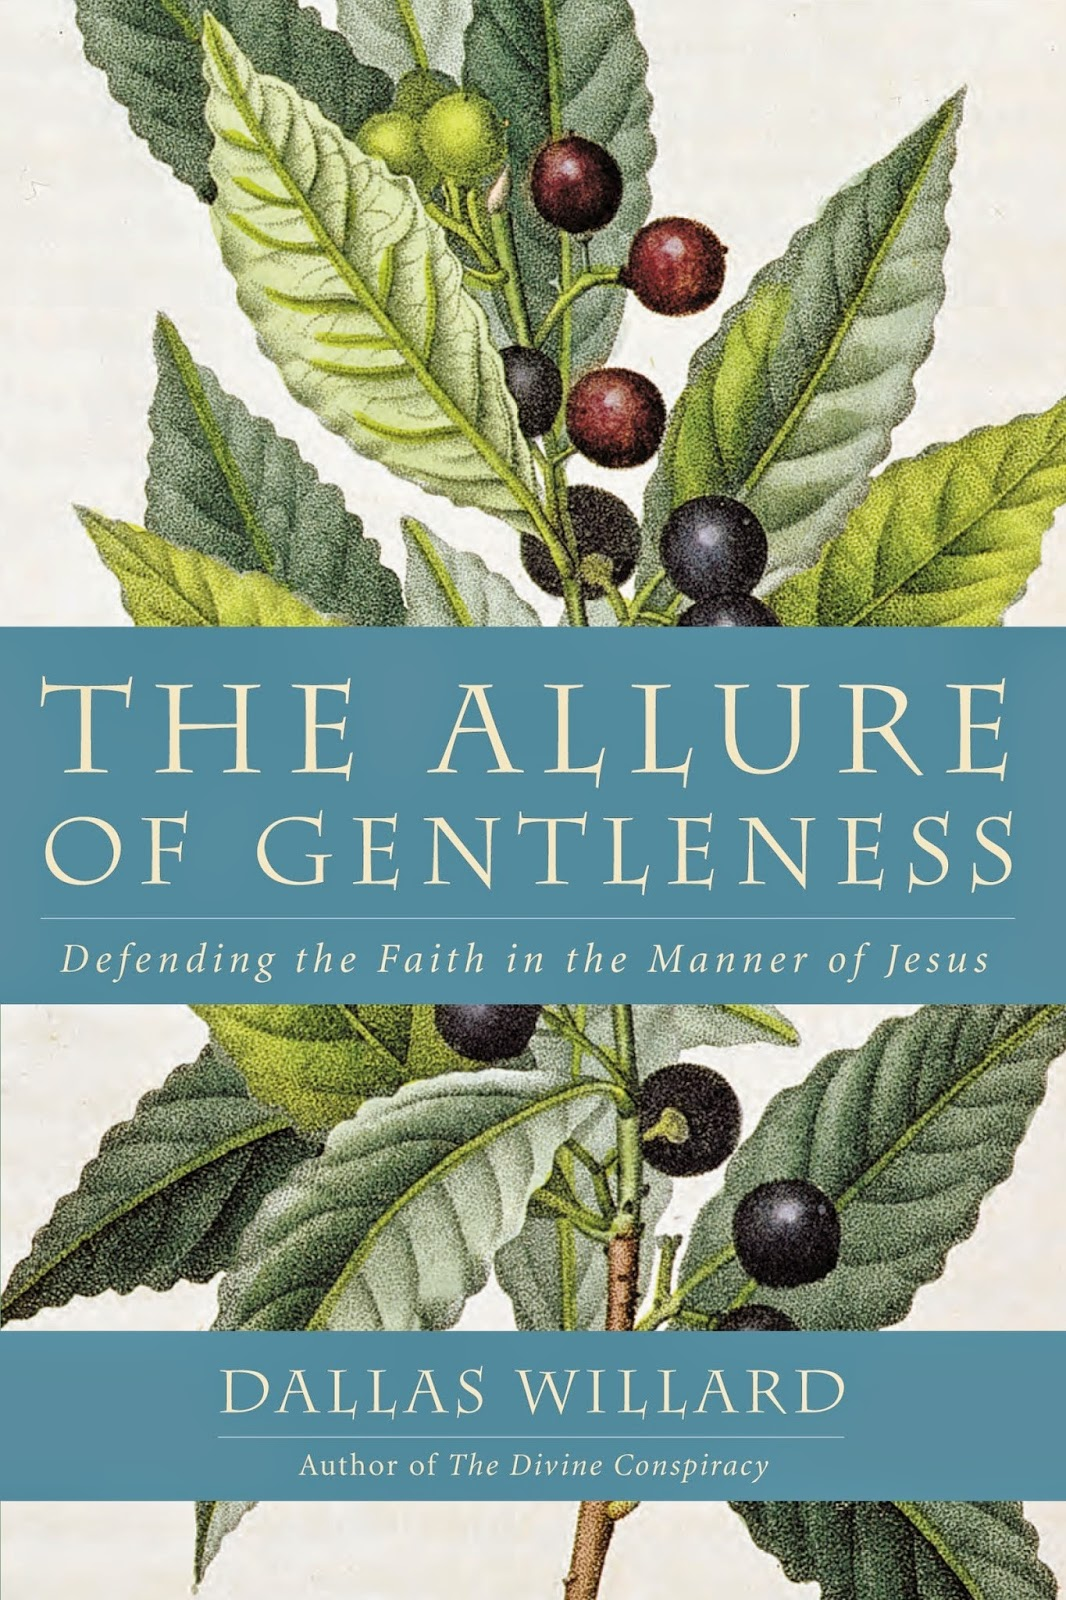 http://www.amazon.com/Allure-Gentleness-Defending-Faith-Manner/dp/0062114085/ref=sr_1_1?s=books&ie=UTF8&qid=1418658826&sr=1-1&keywords=the+allure+of+gentleness+by+dallas+willard